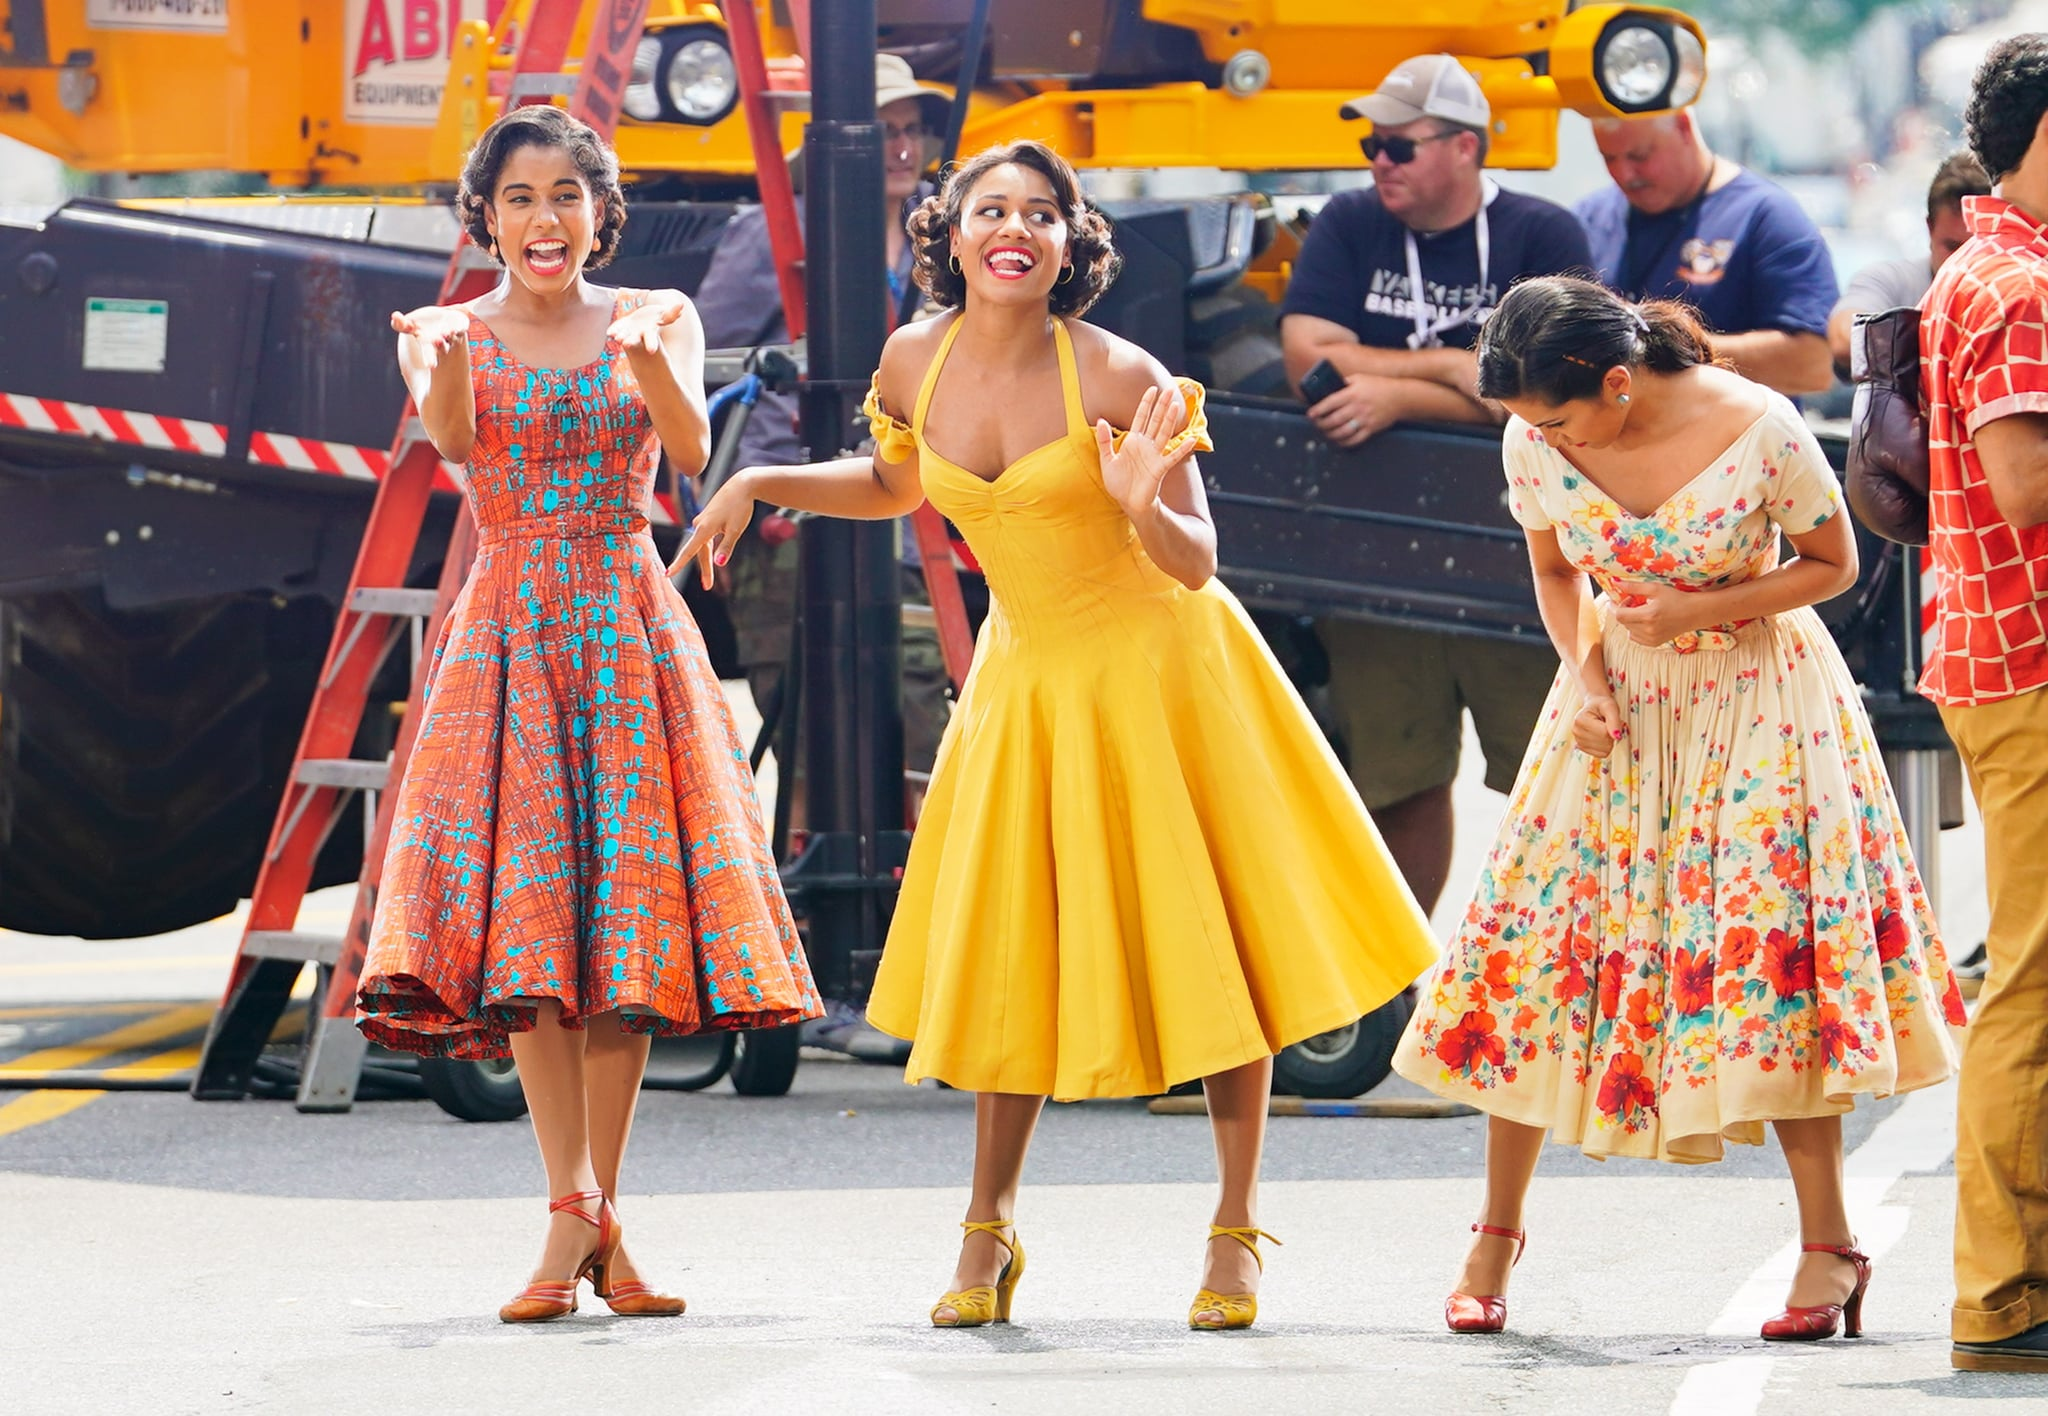 NEW YORK, NY - JULY 27:  Ariana DeBose and David Alvarez on the set of 'West Side Story' on July 27, 2019 in New York City.  (Photo by Gotham/GC Images)